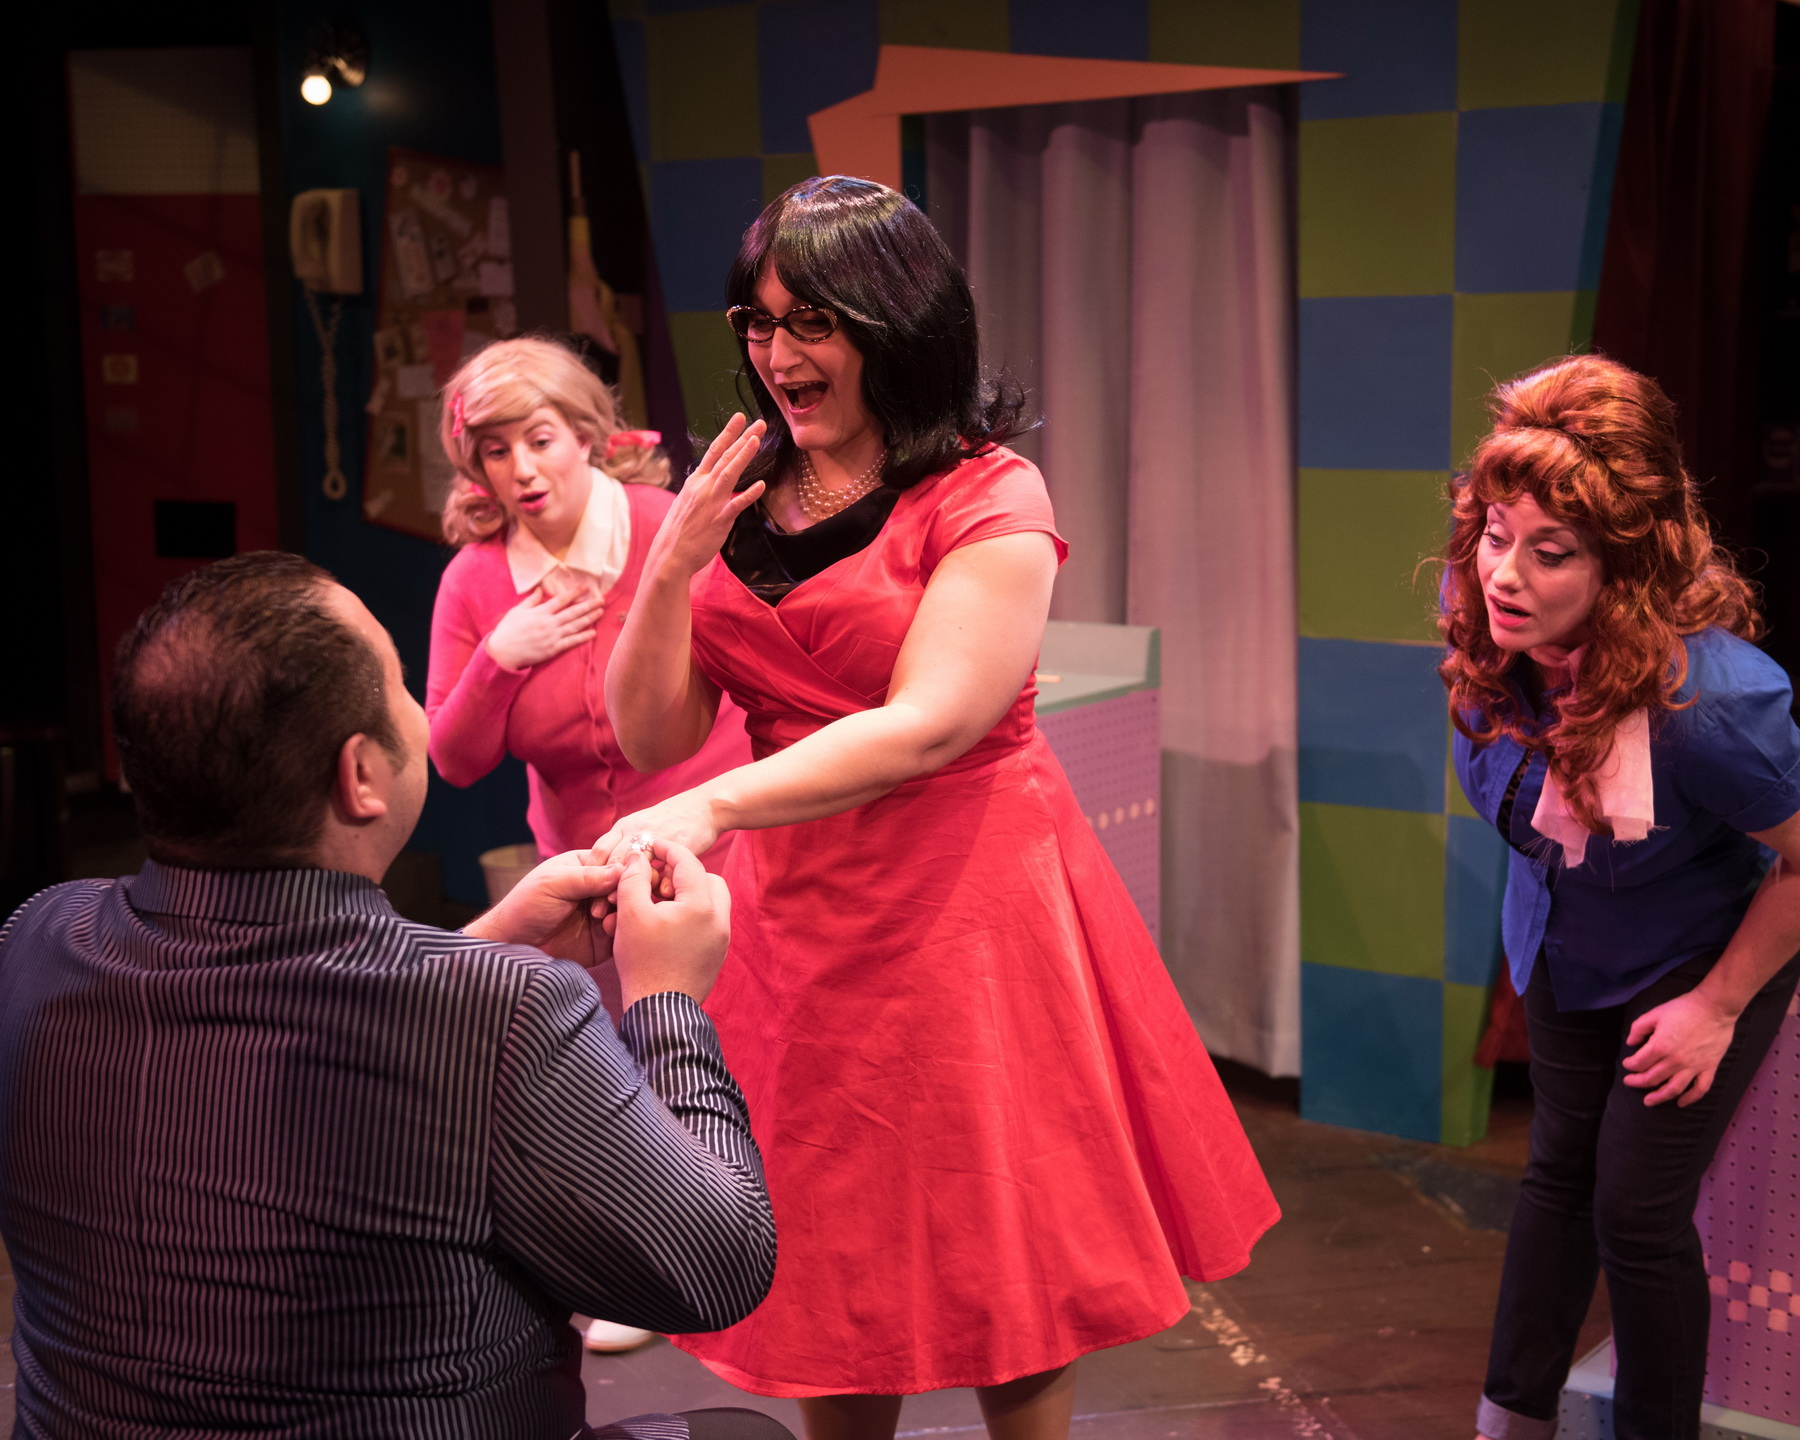 front: Matt Cuffari as Johnny Angel and Kate Klotzbach as Dee Dee  back: Ellie St. Cyr as Cindy and Eileen Canepari as Marge